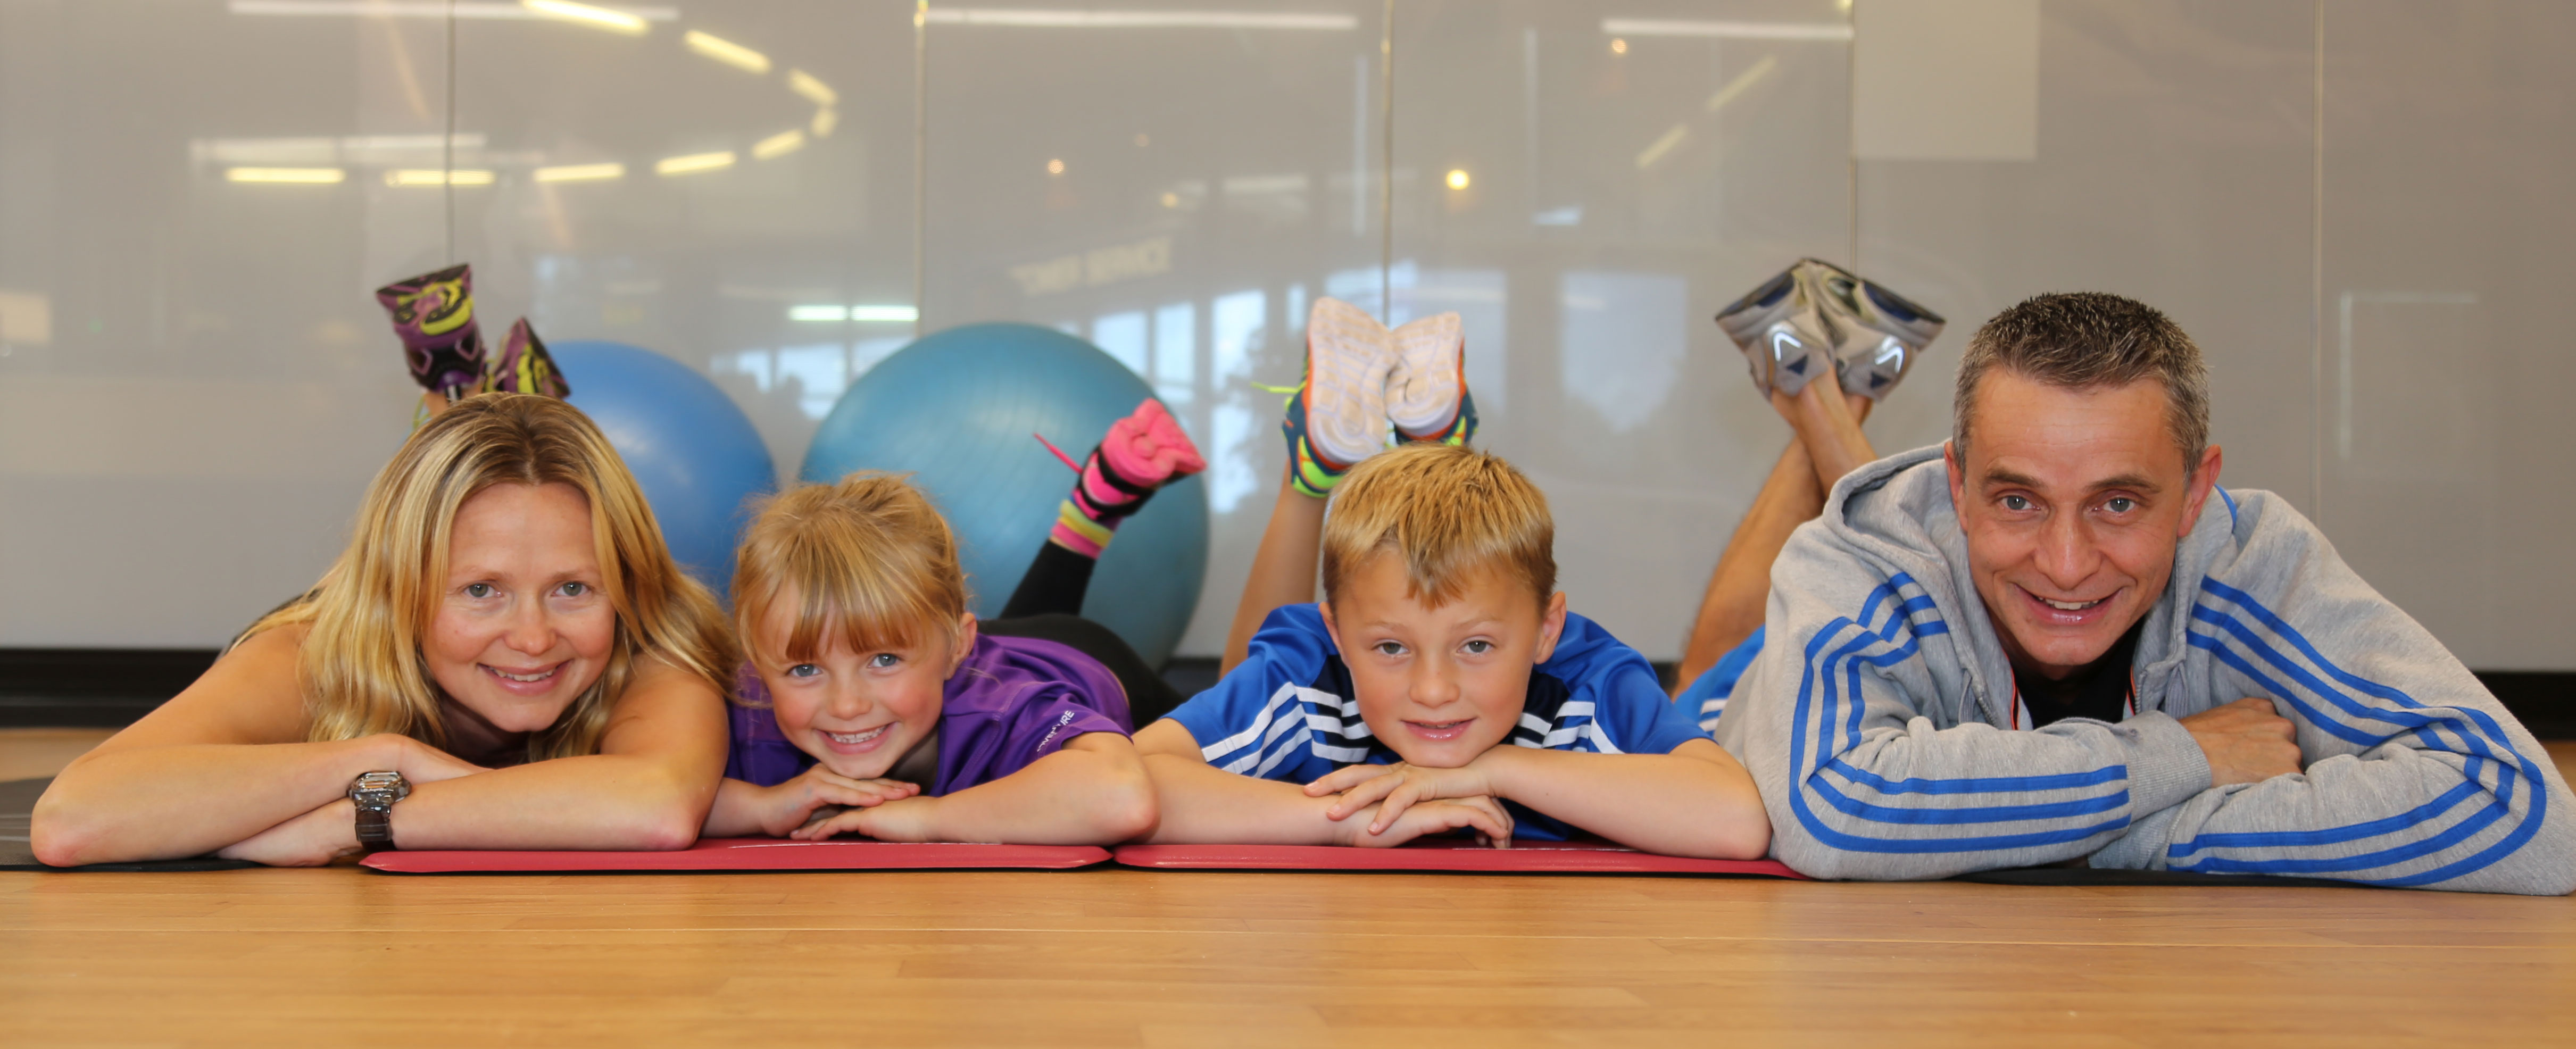 Families Are Getting More Active Despite A National